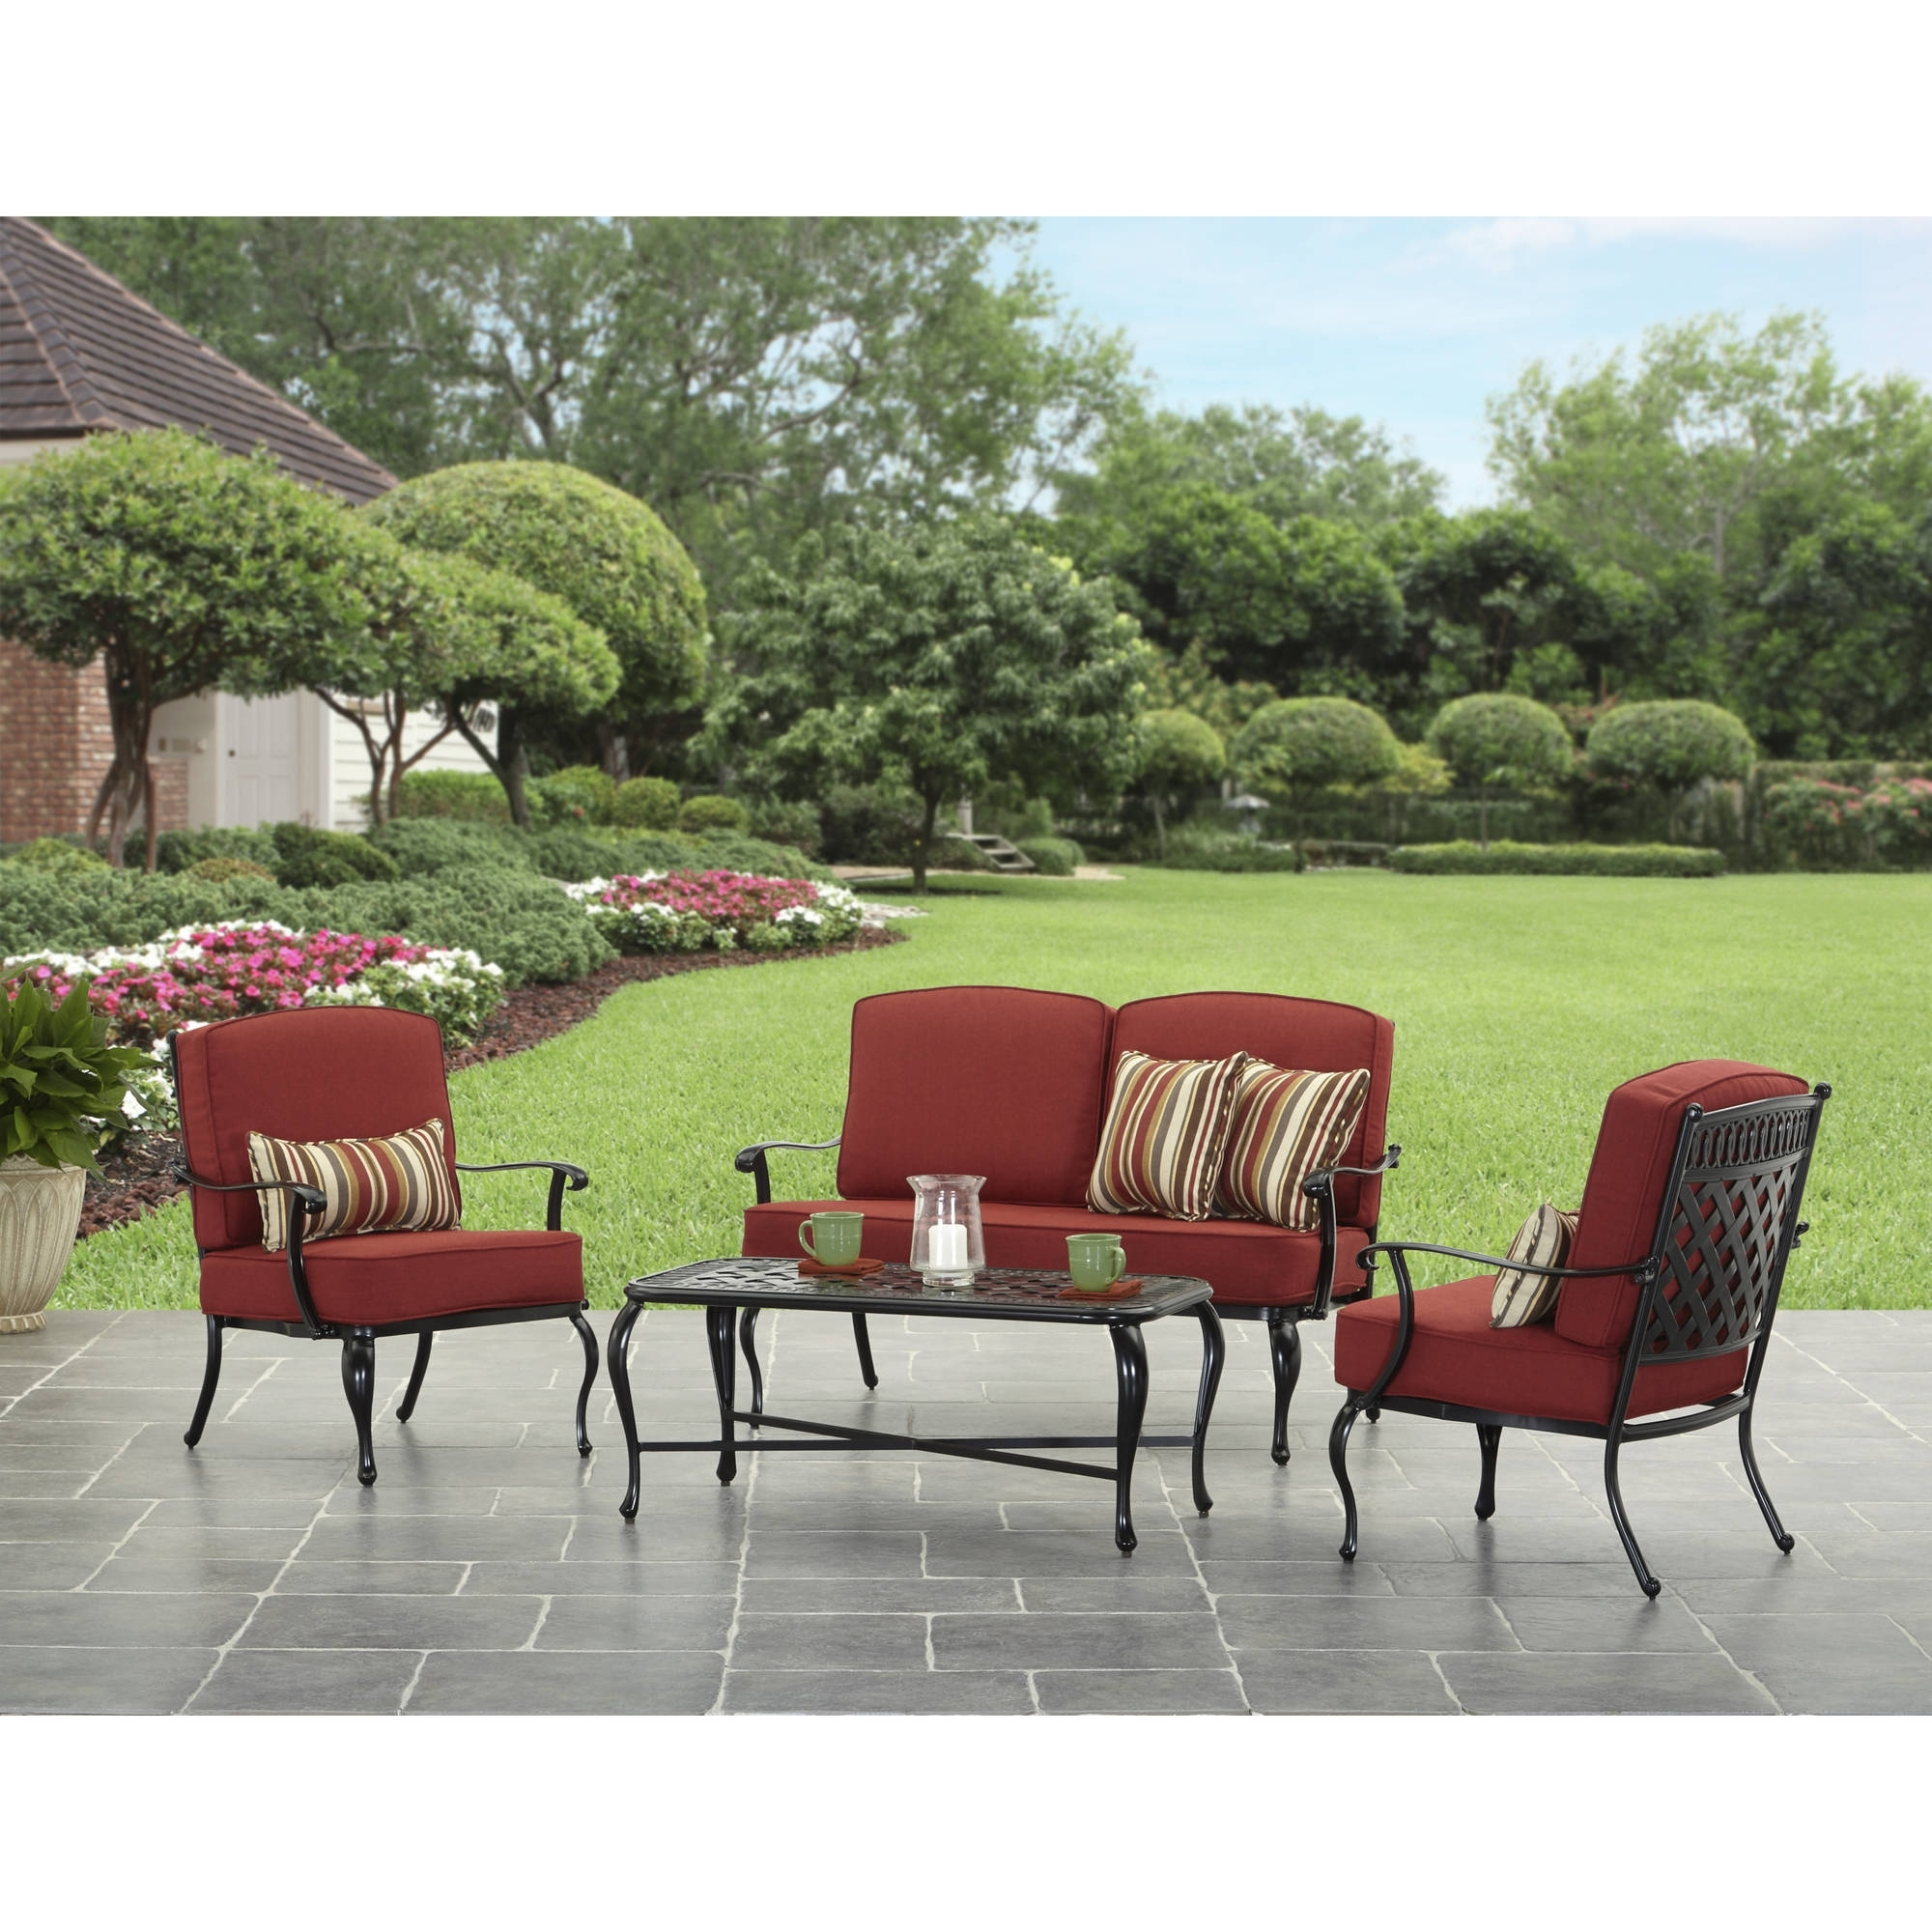 Best And Newest Dot Patio Conversation Sets Inside Better Homes And Garden Dawn Hill 4 Piece Outdoor Conversation Set (View 1 of 15)